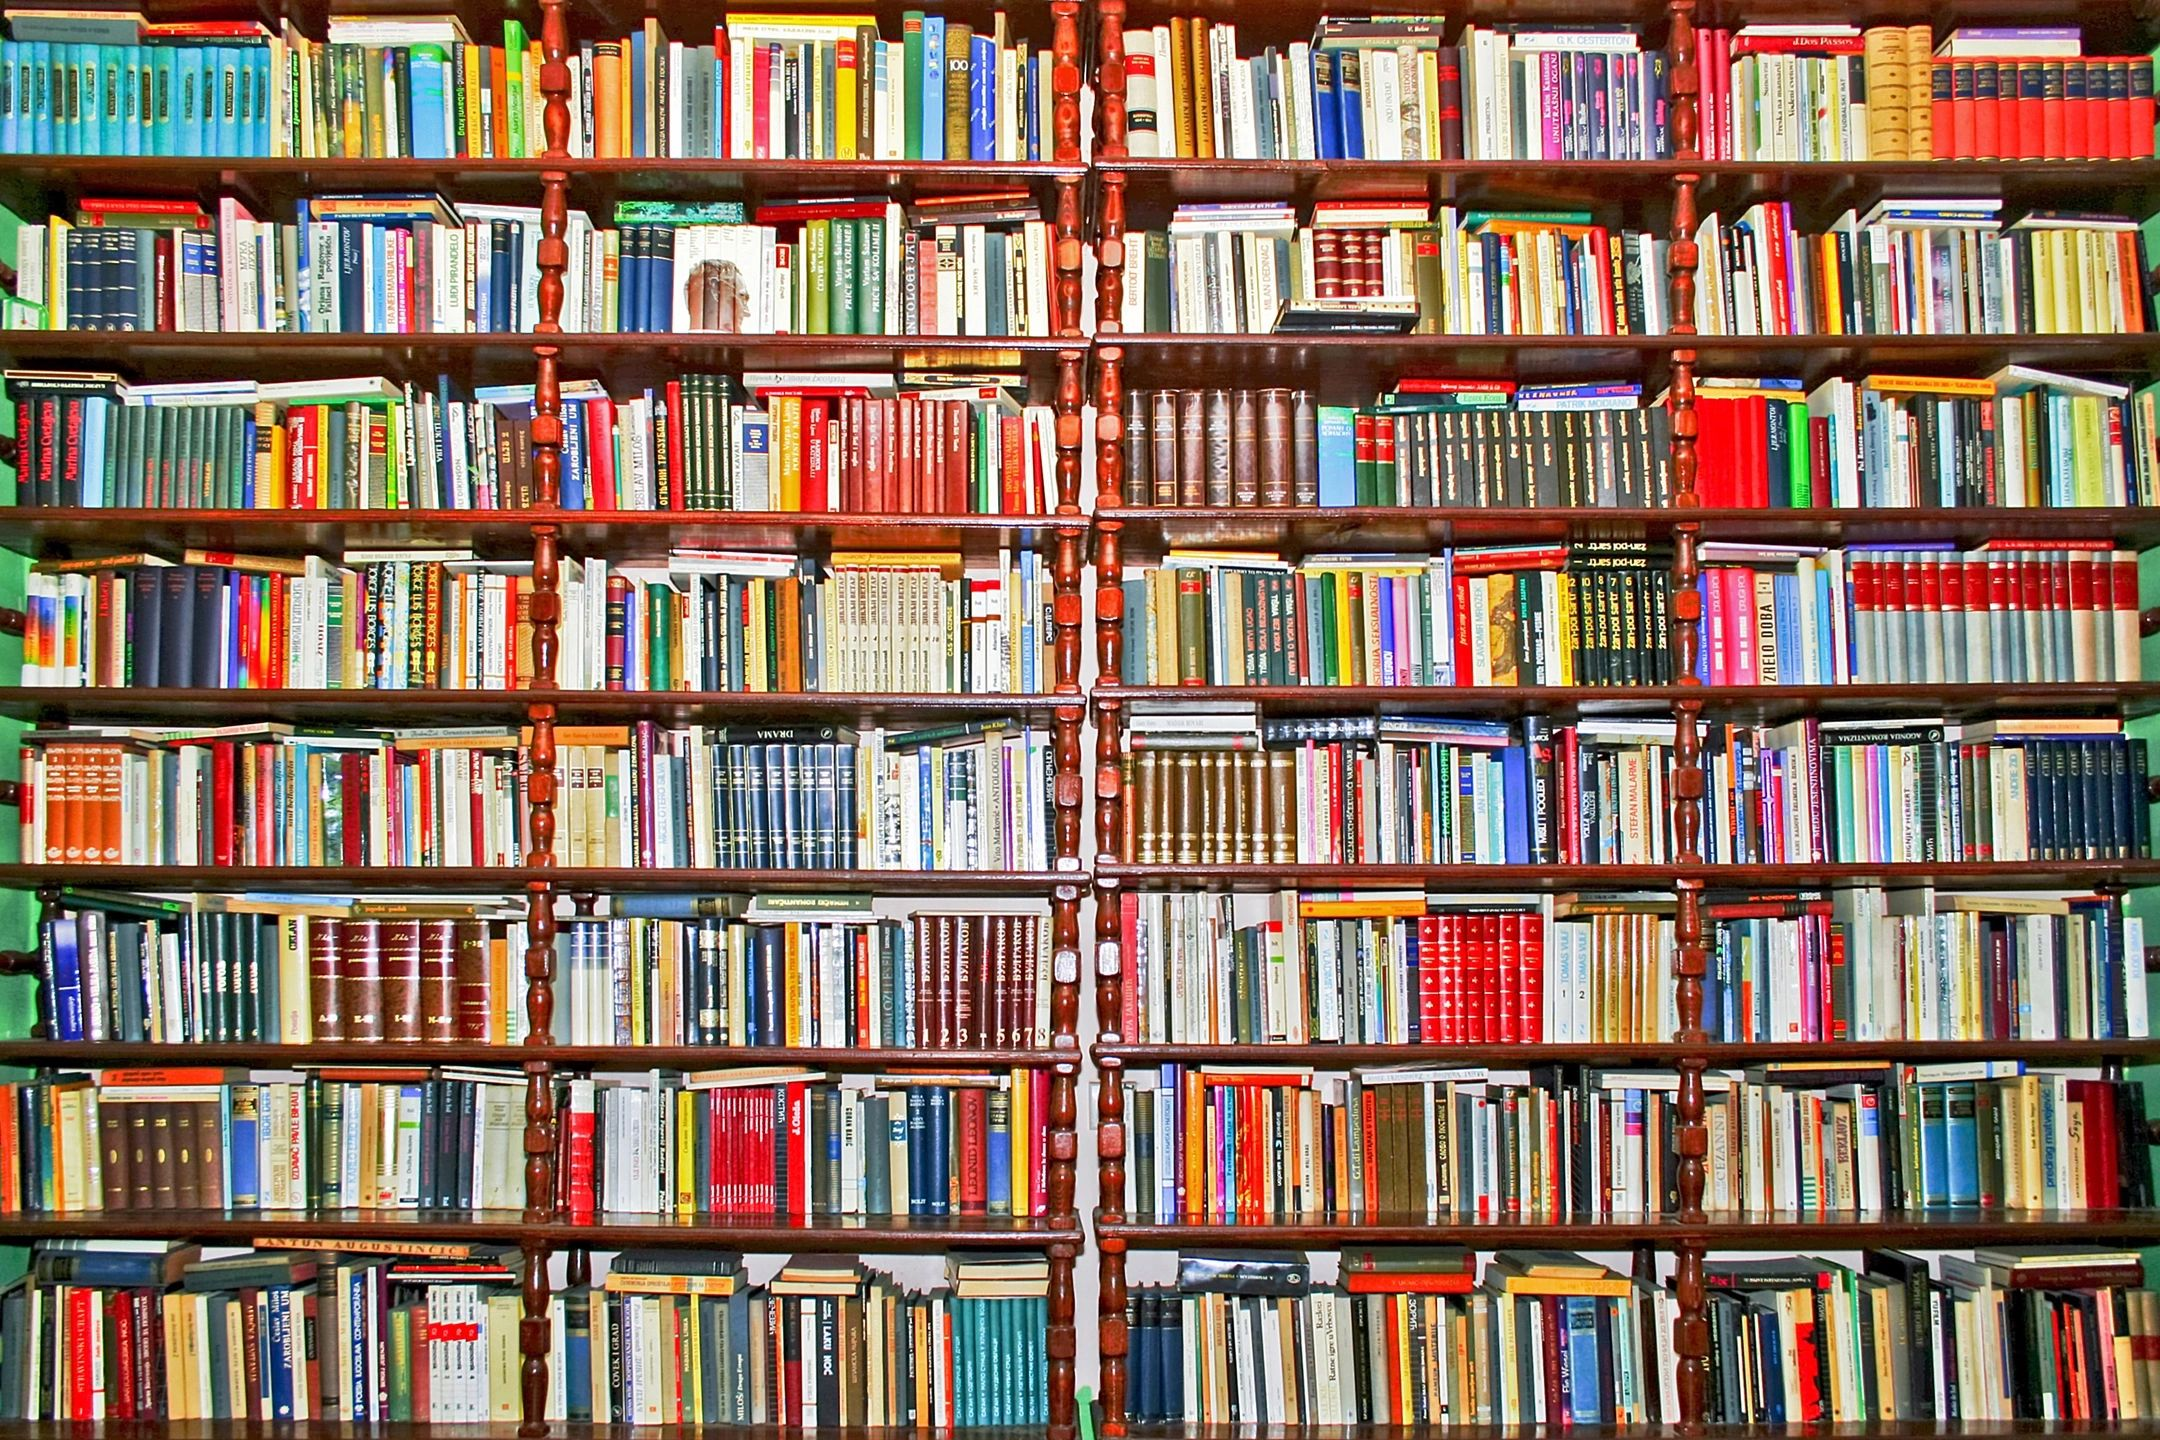 Book shelves jammed full with colorful books